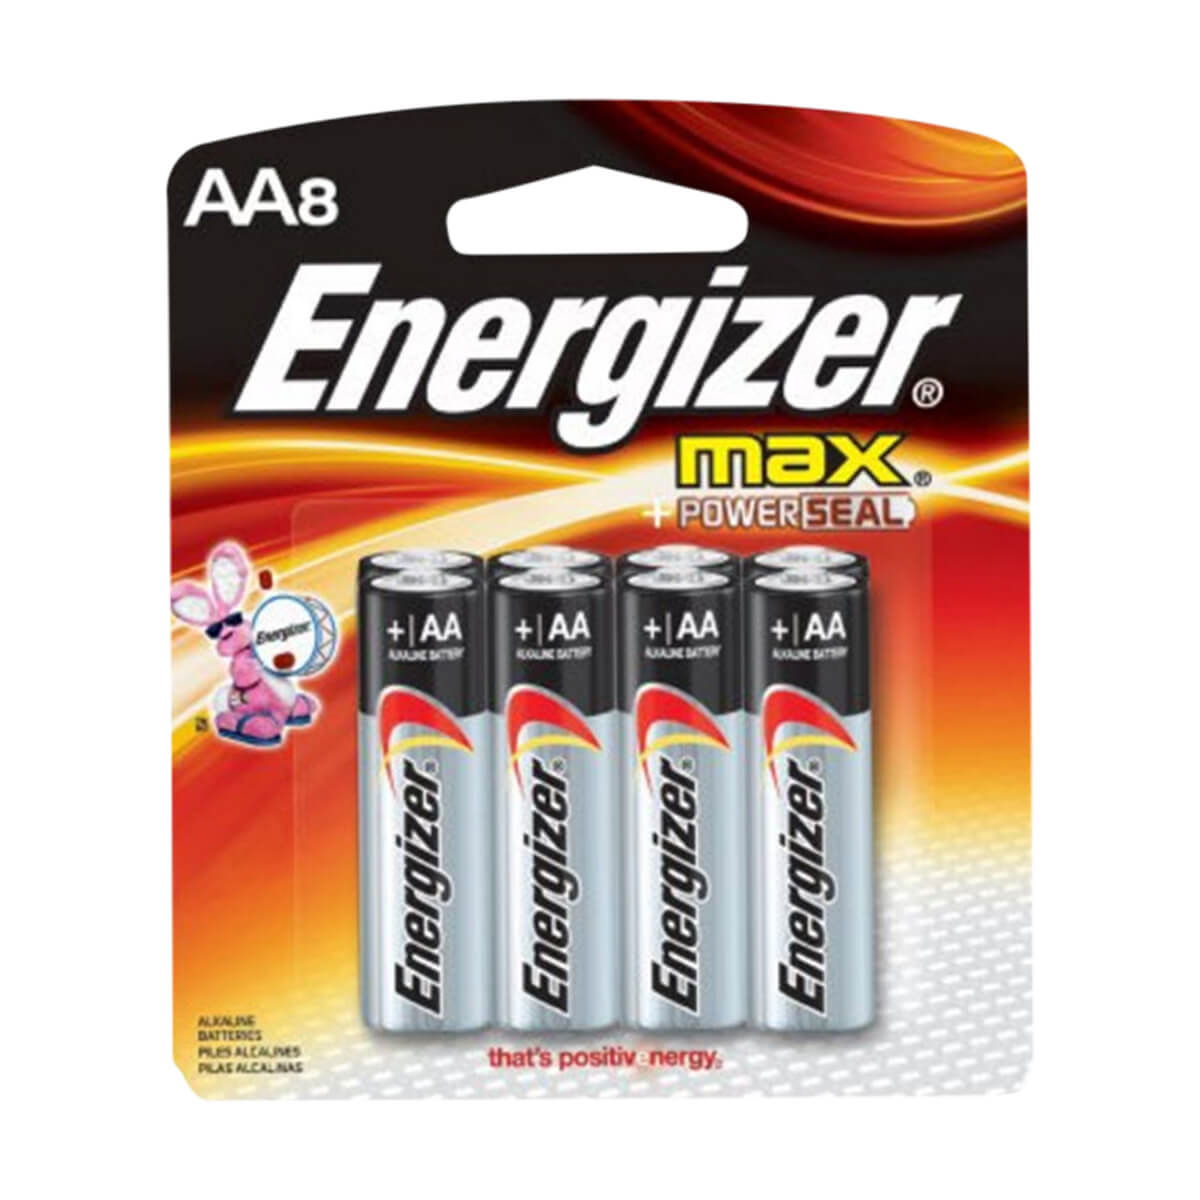 AA Energizer Batteries - 8-Pack